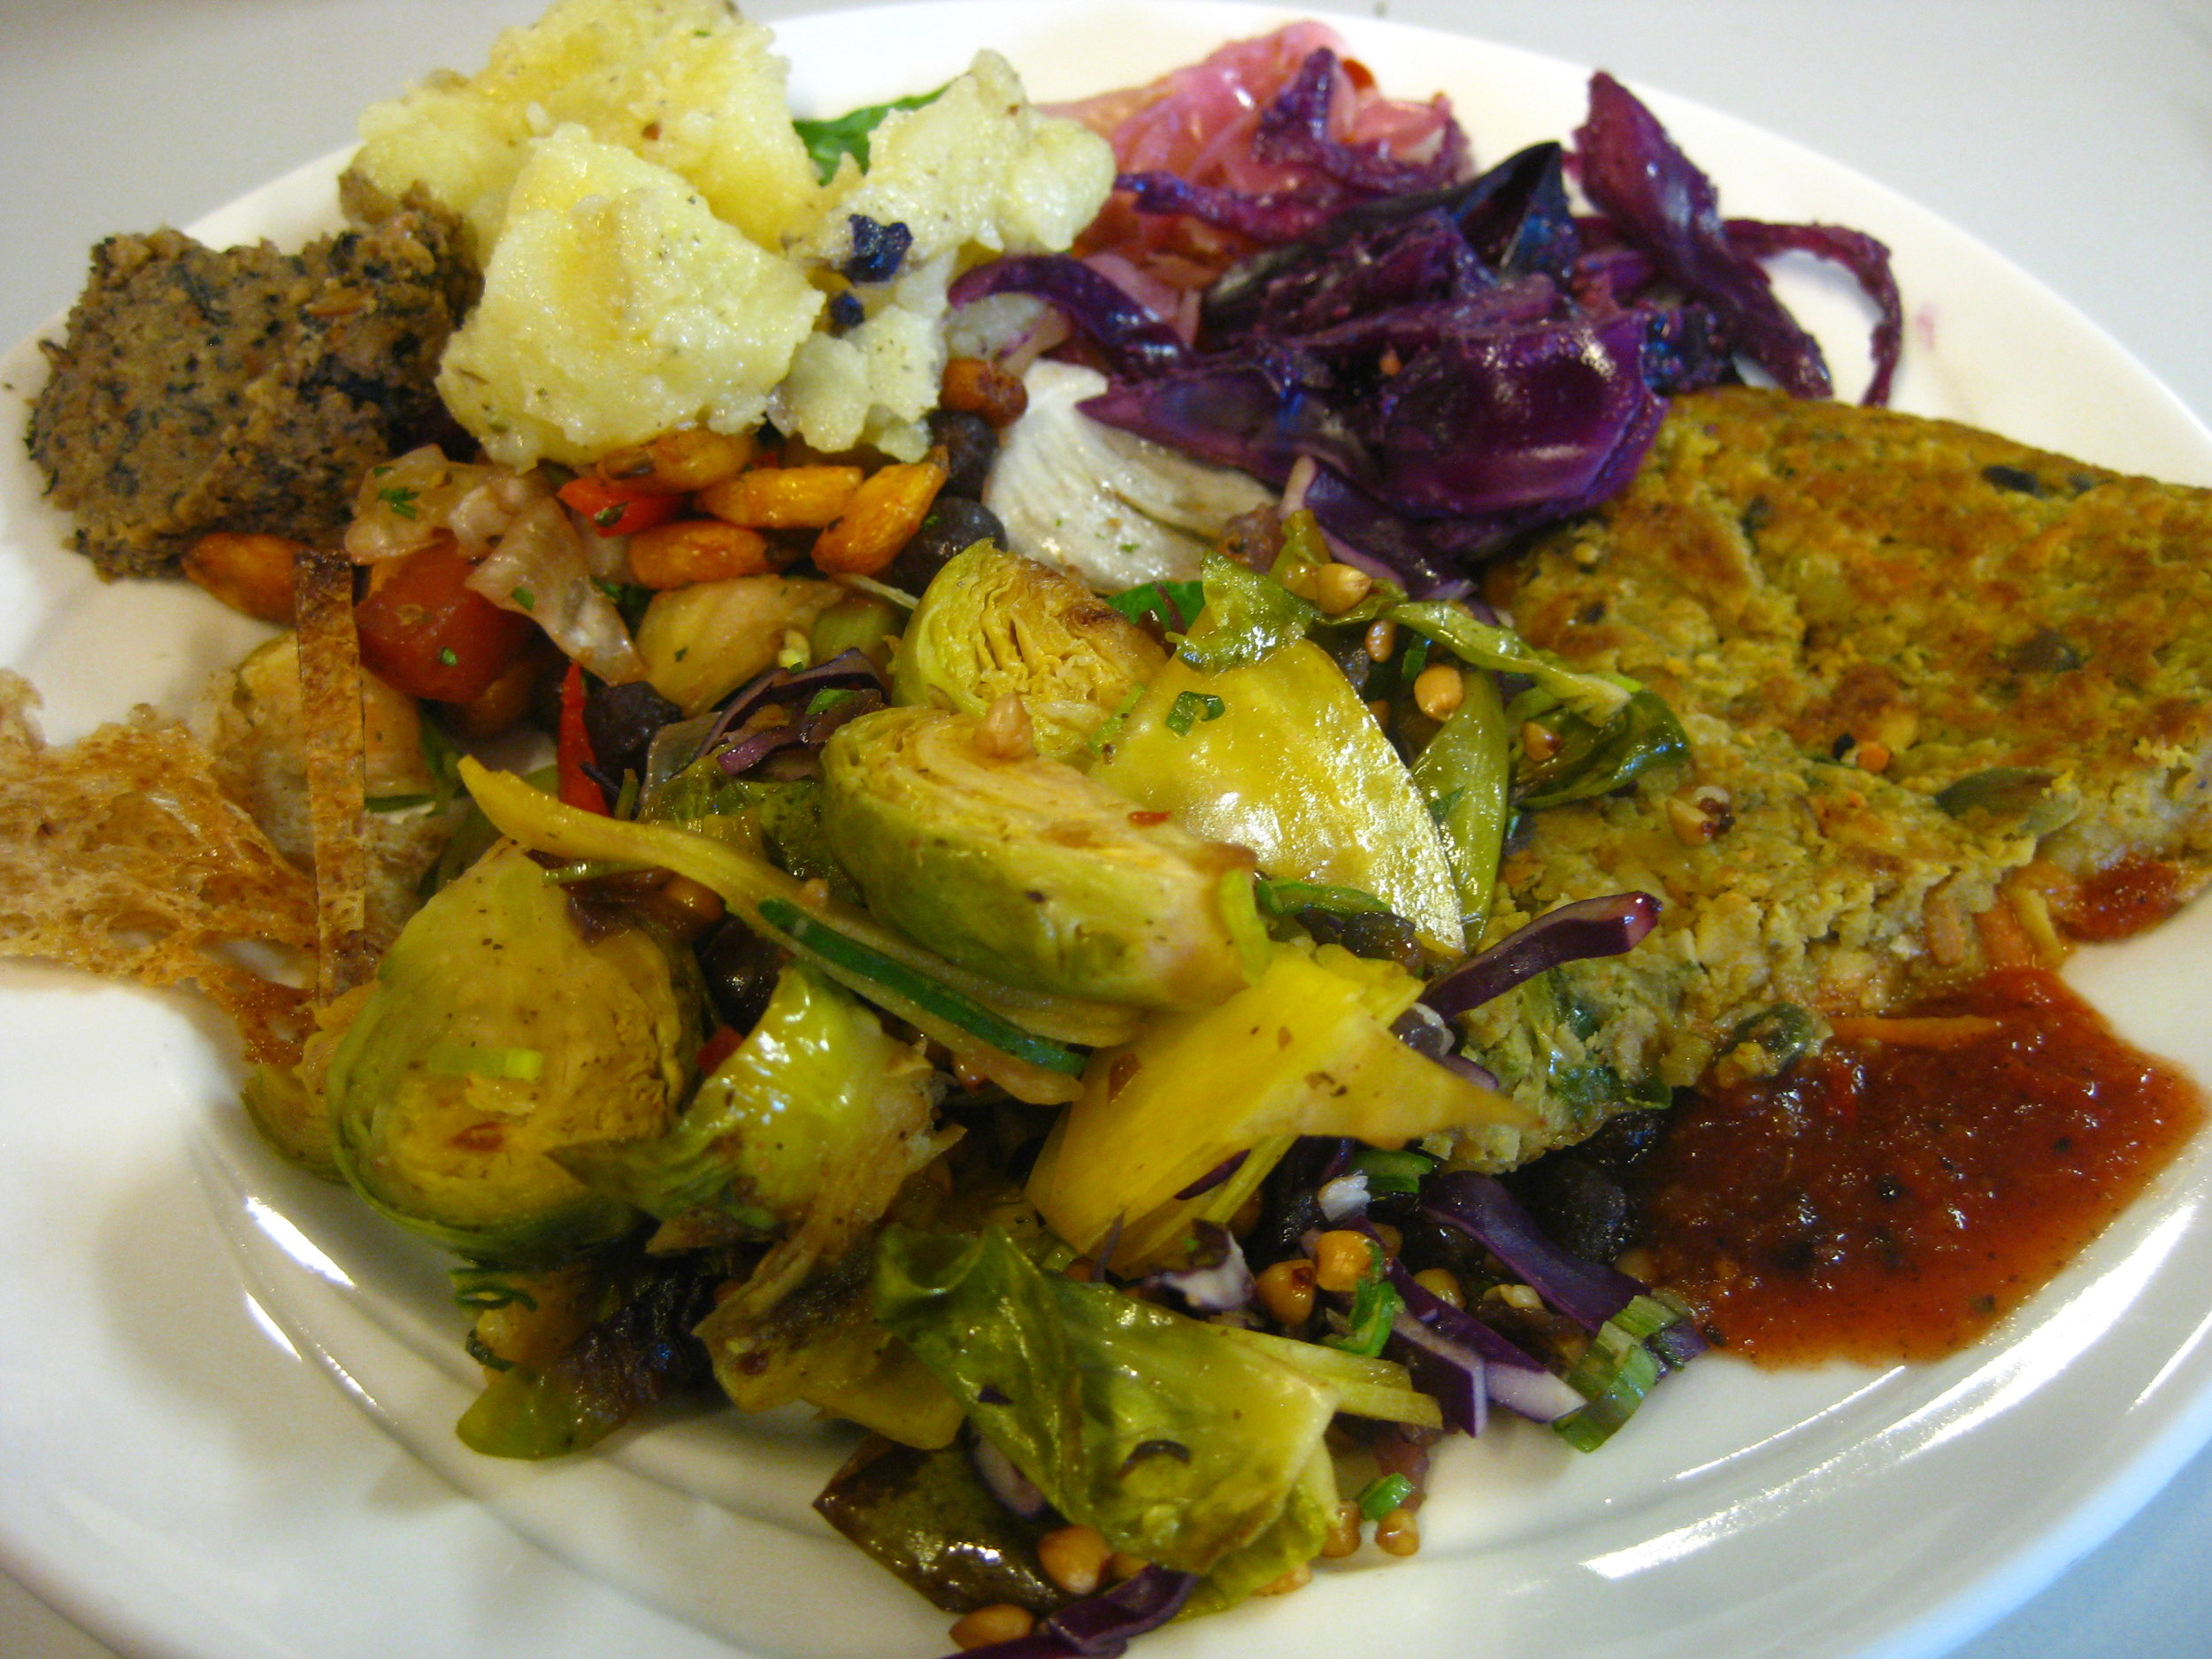 A vegan lunch for systems thinking day